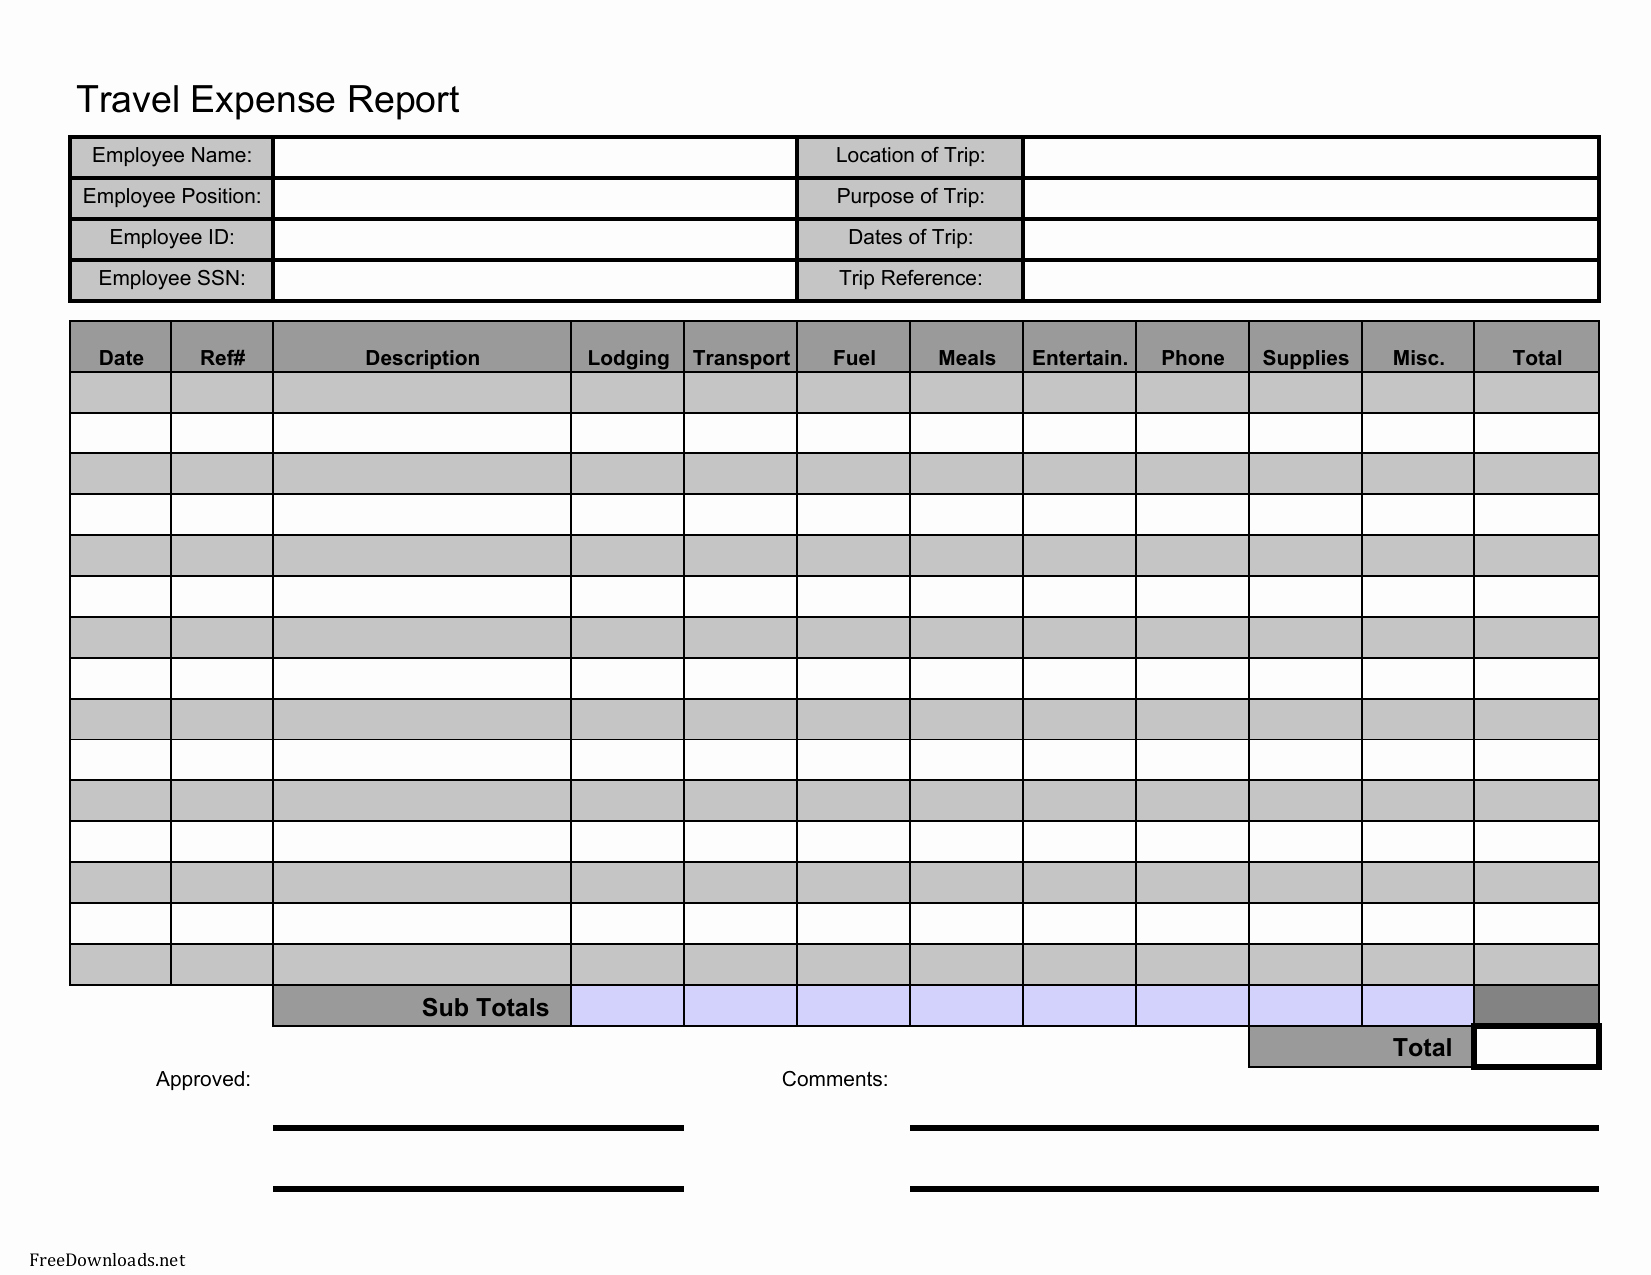 Employee Expense Report Template Beautiful Download Travel Expense Report Template Excel